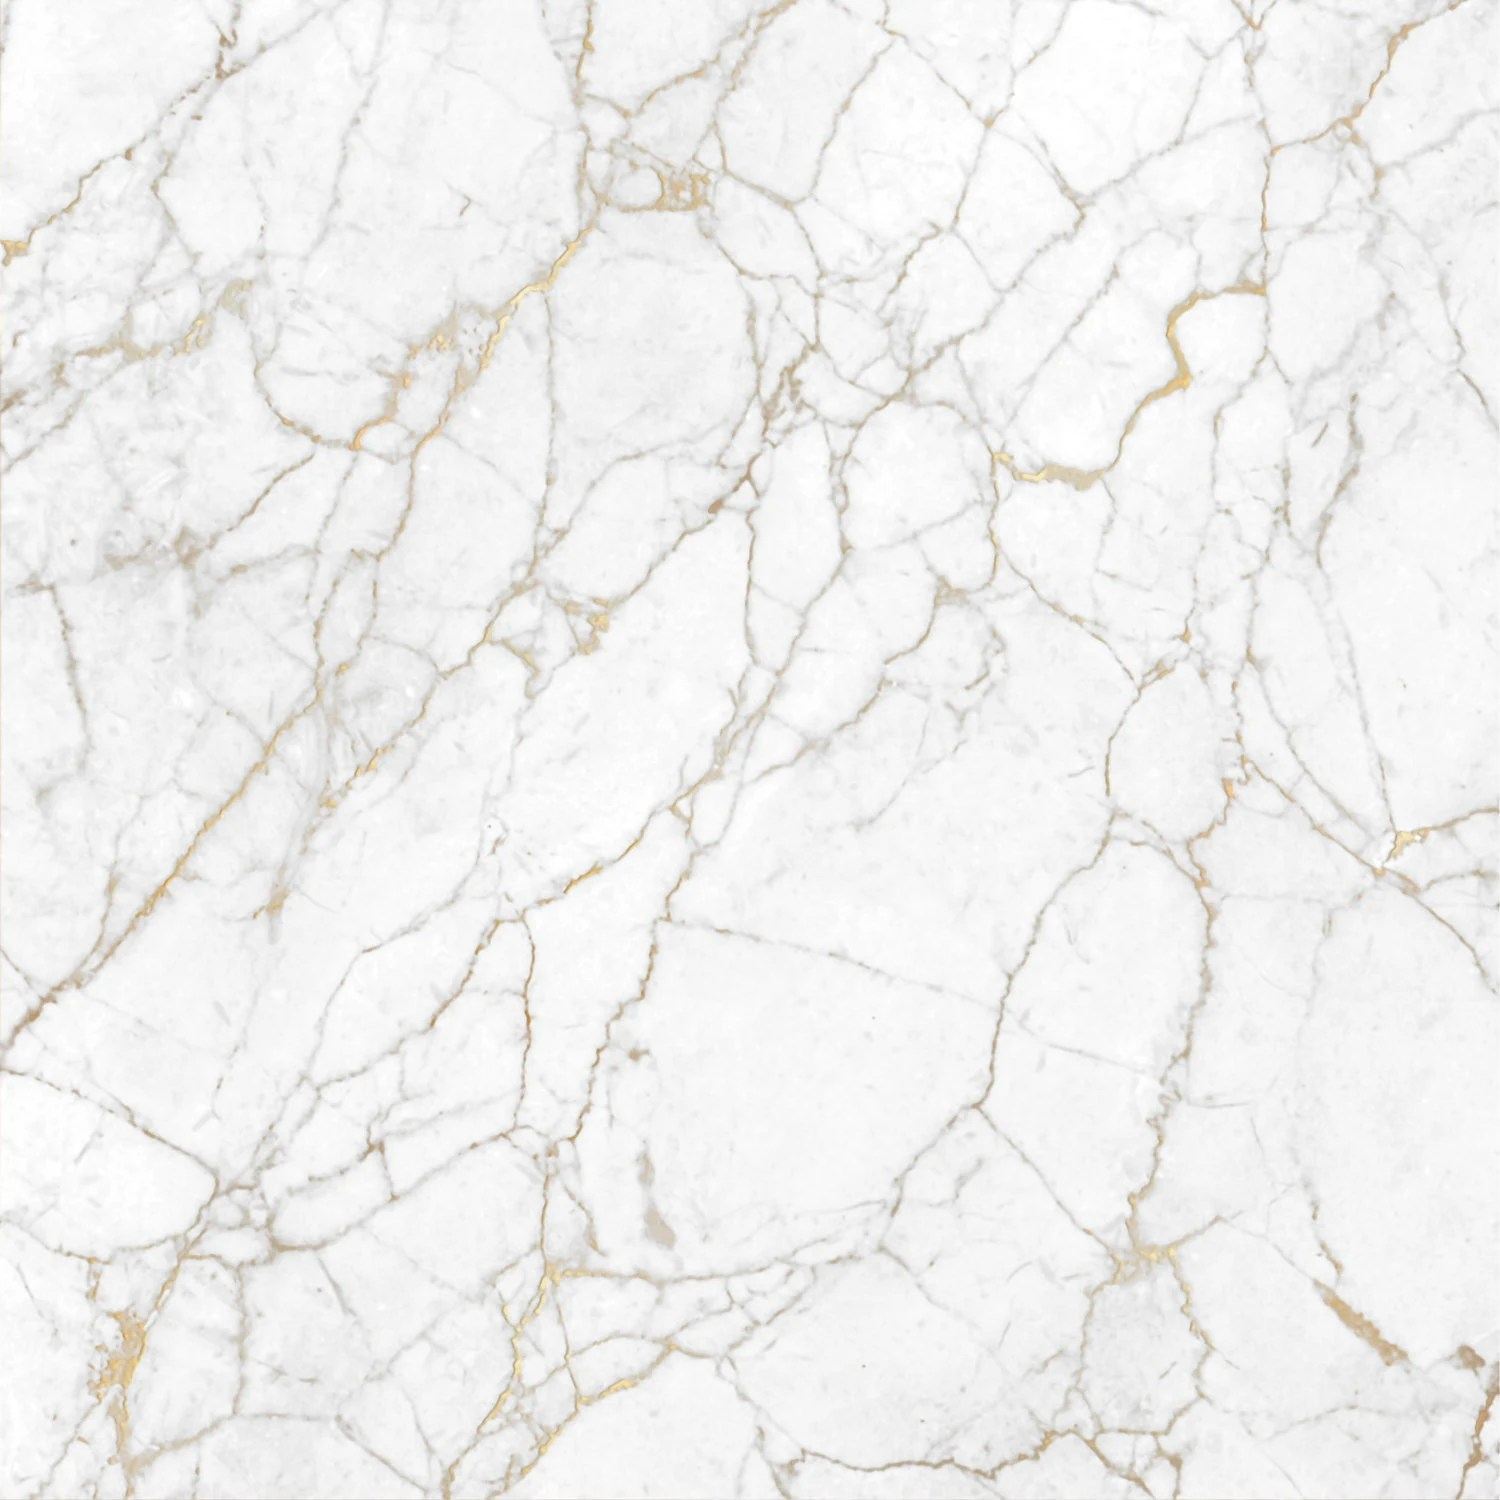 Black White Amp Gold Marble 12 12 Scrapbook Paper From